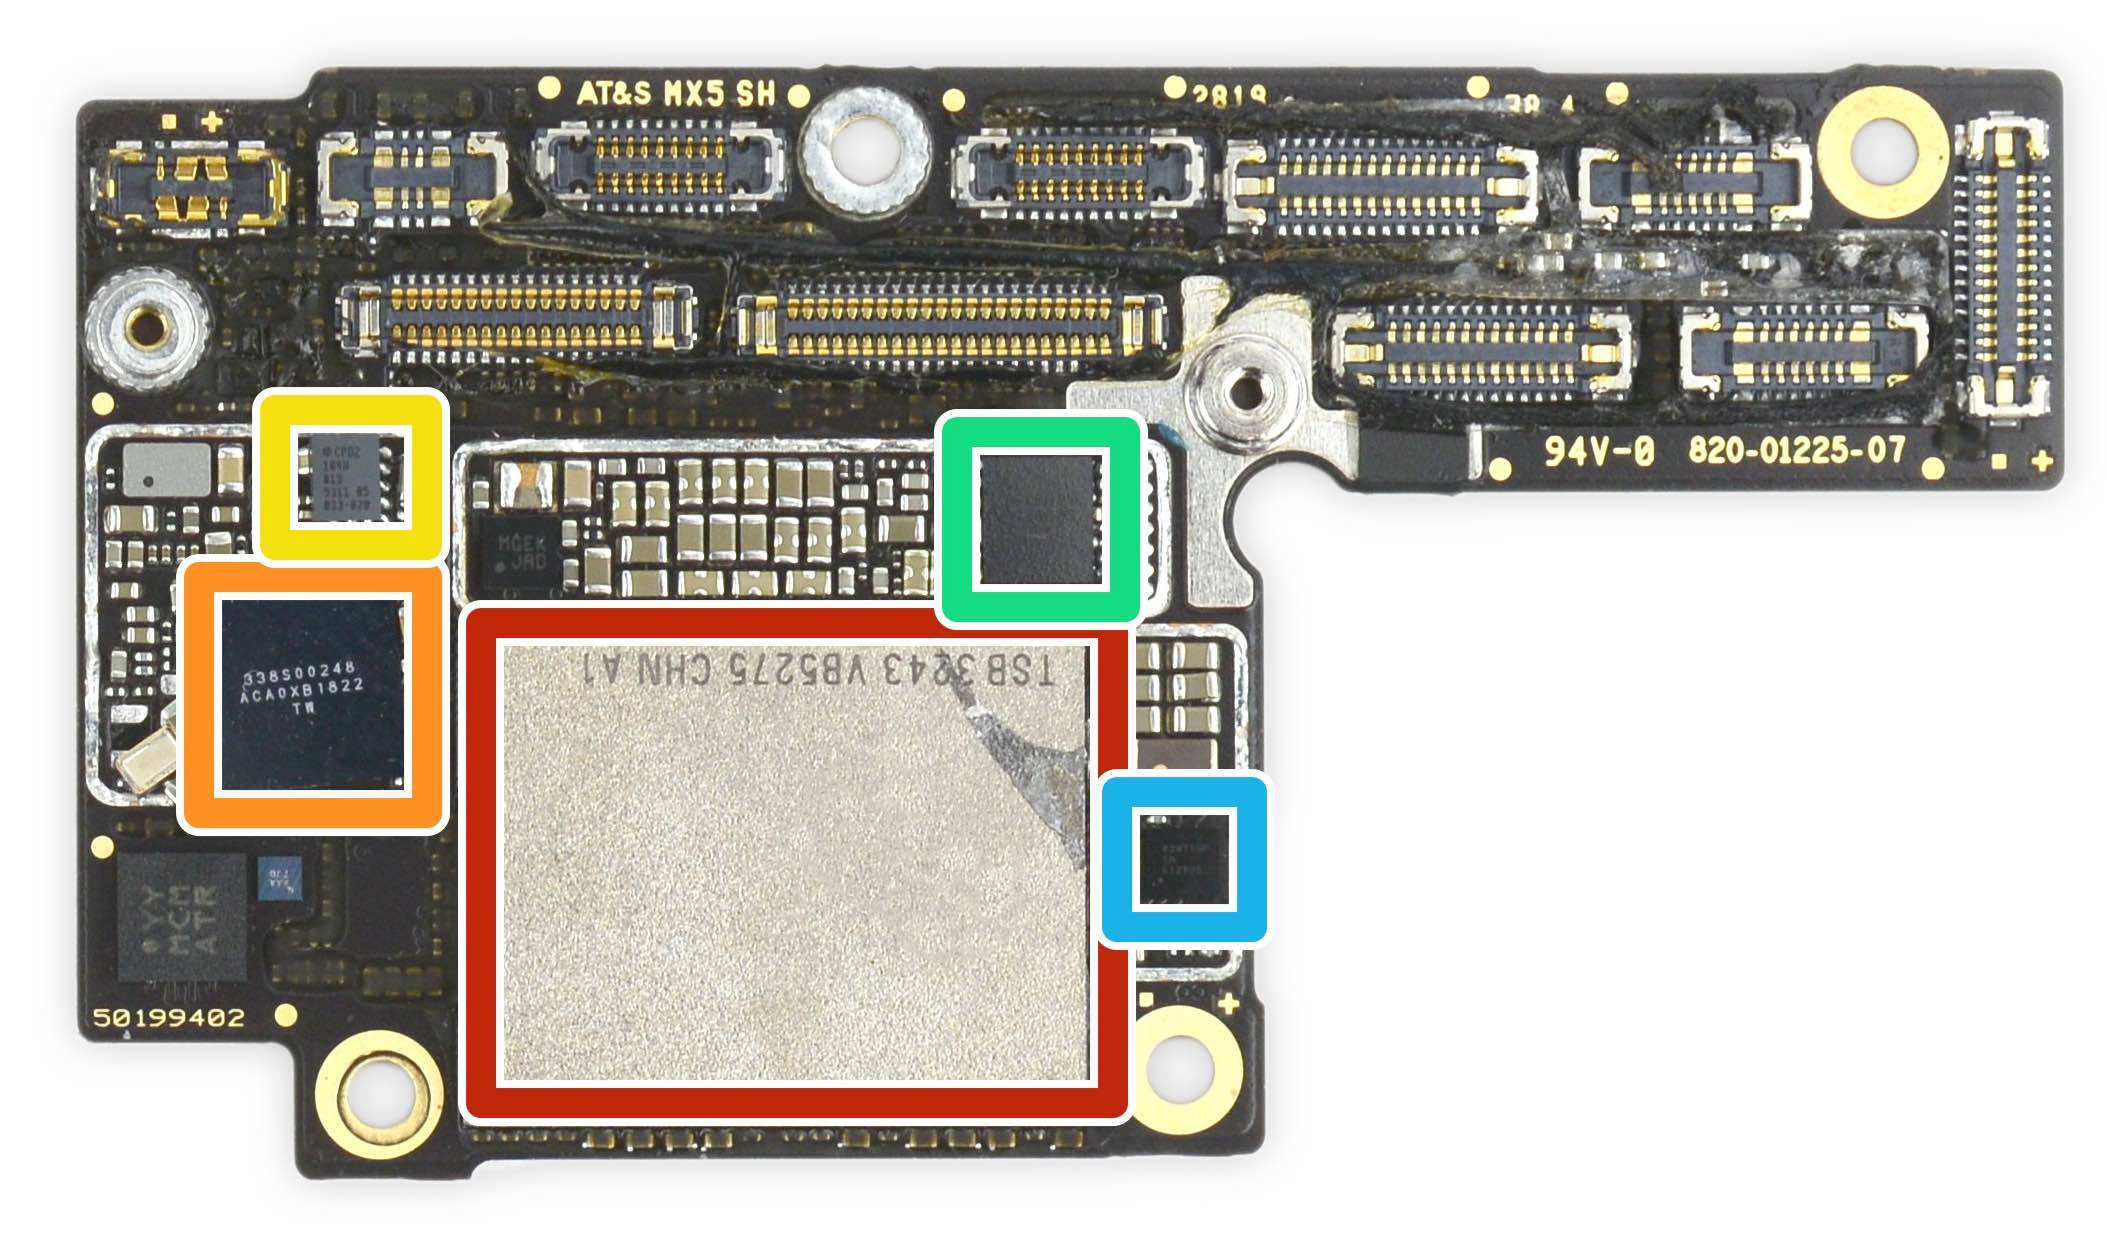 An image from iFixit showing an iPhone XS motherboard with the Toshiba-made flash chip highlighted in red